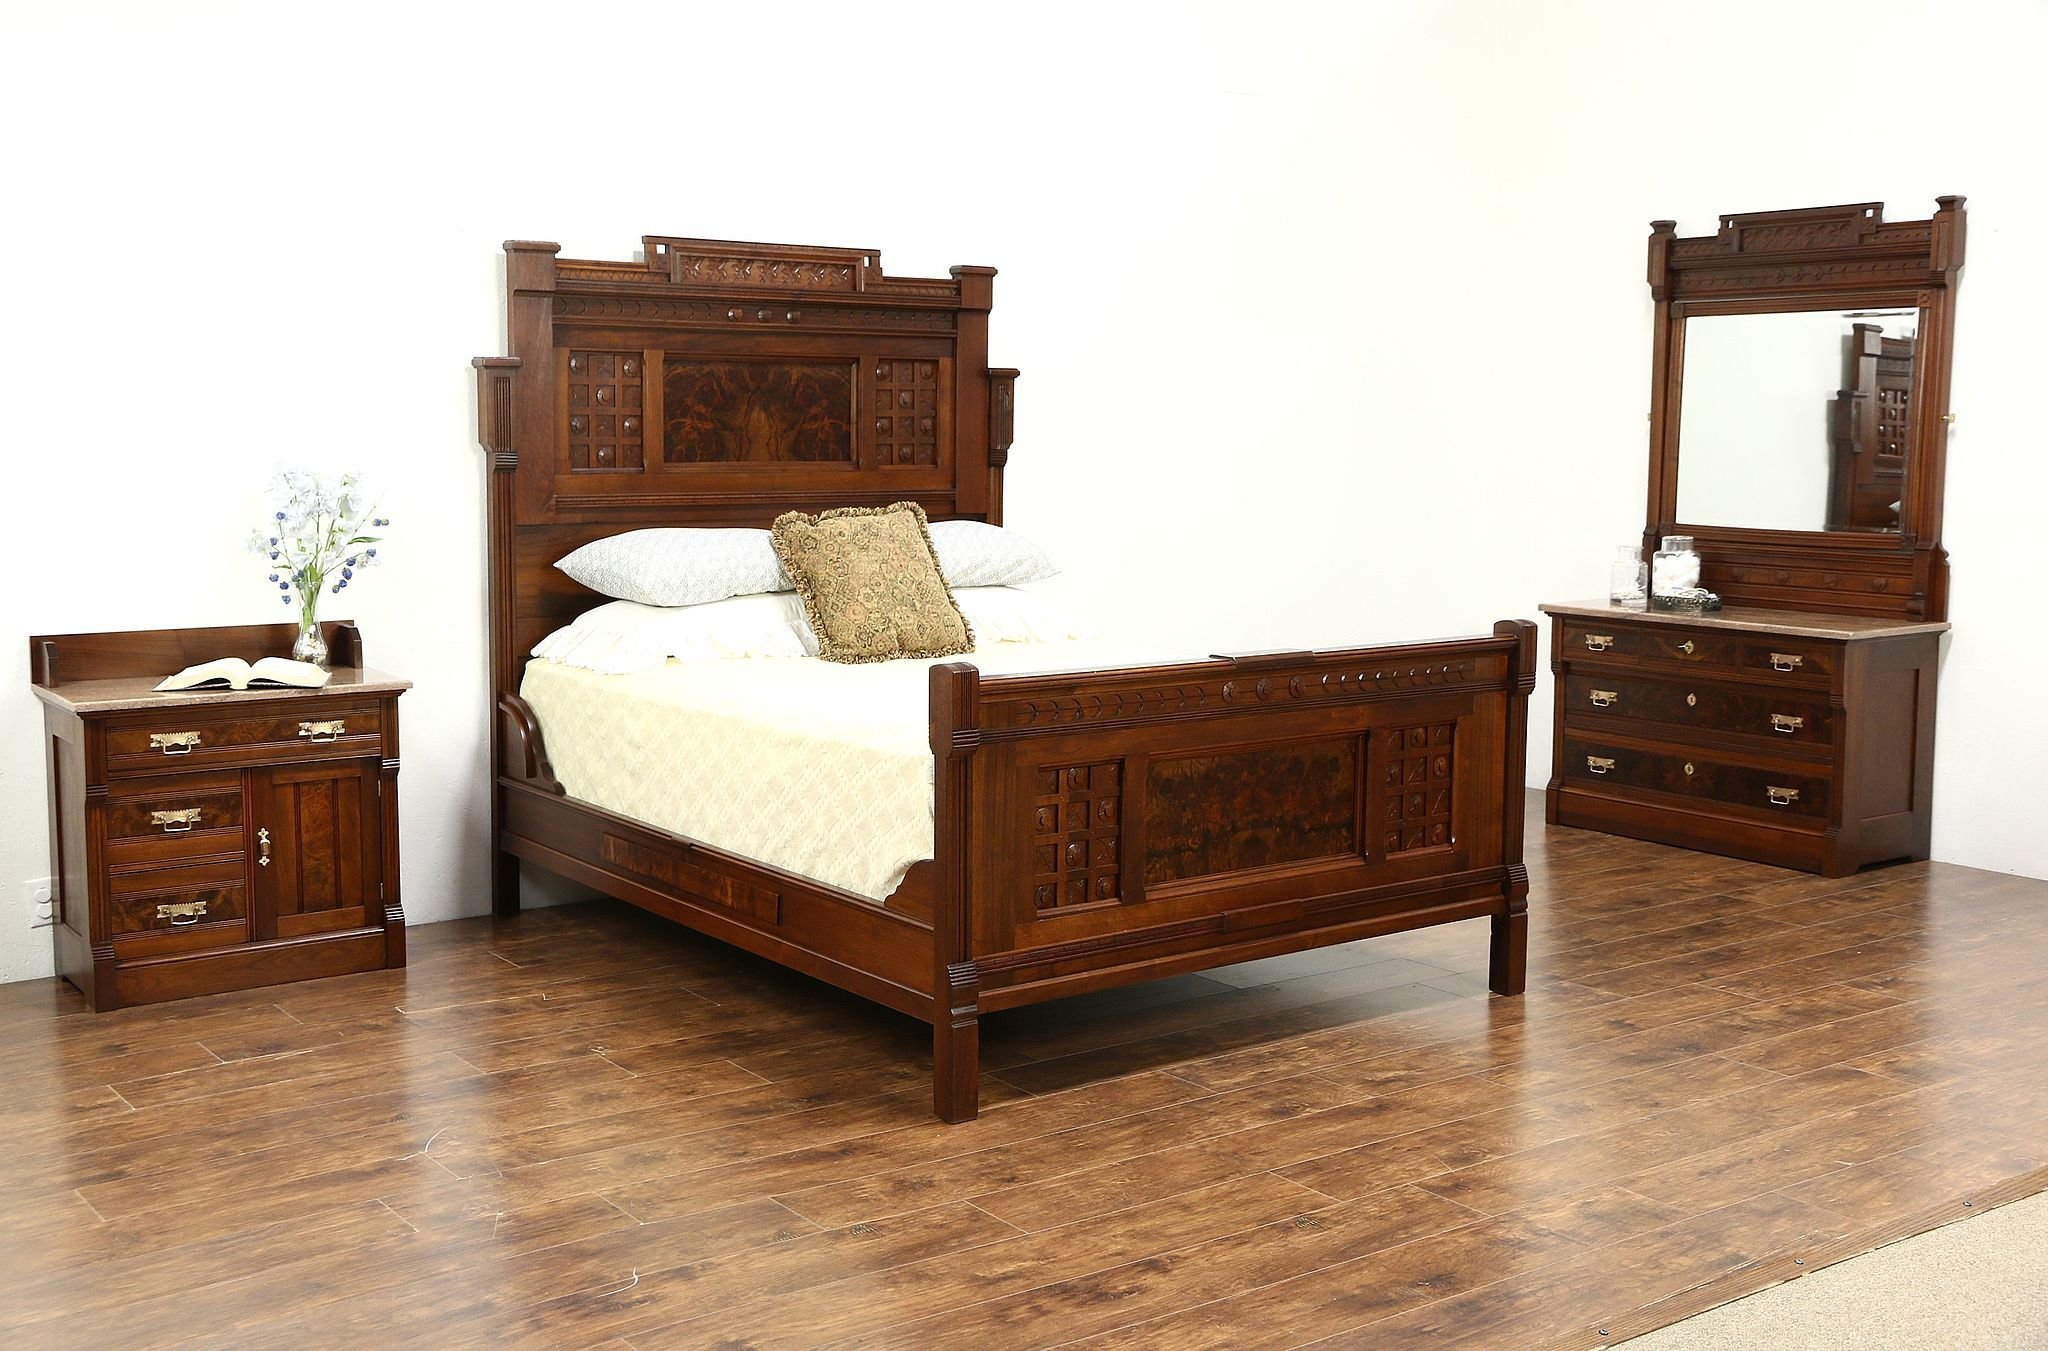 Best Sold Victorian Eastlake 1880 Antique 3 Pc Queen Size With Pictures